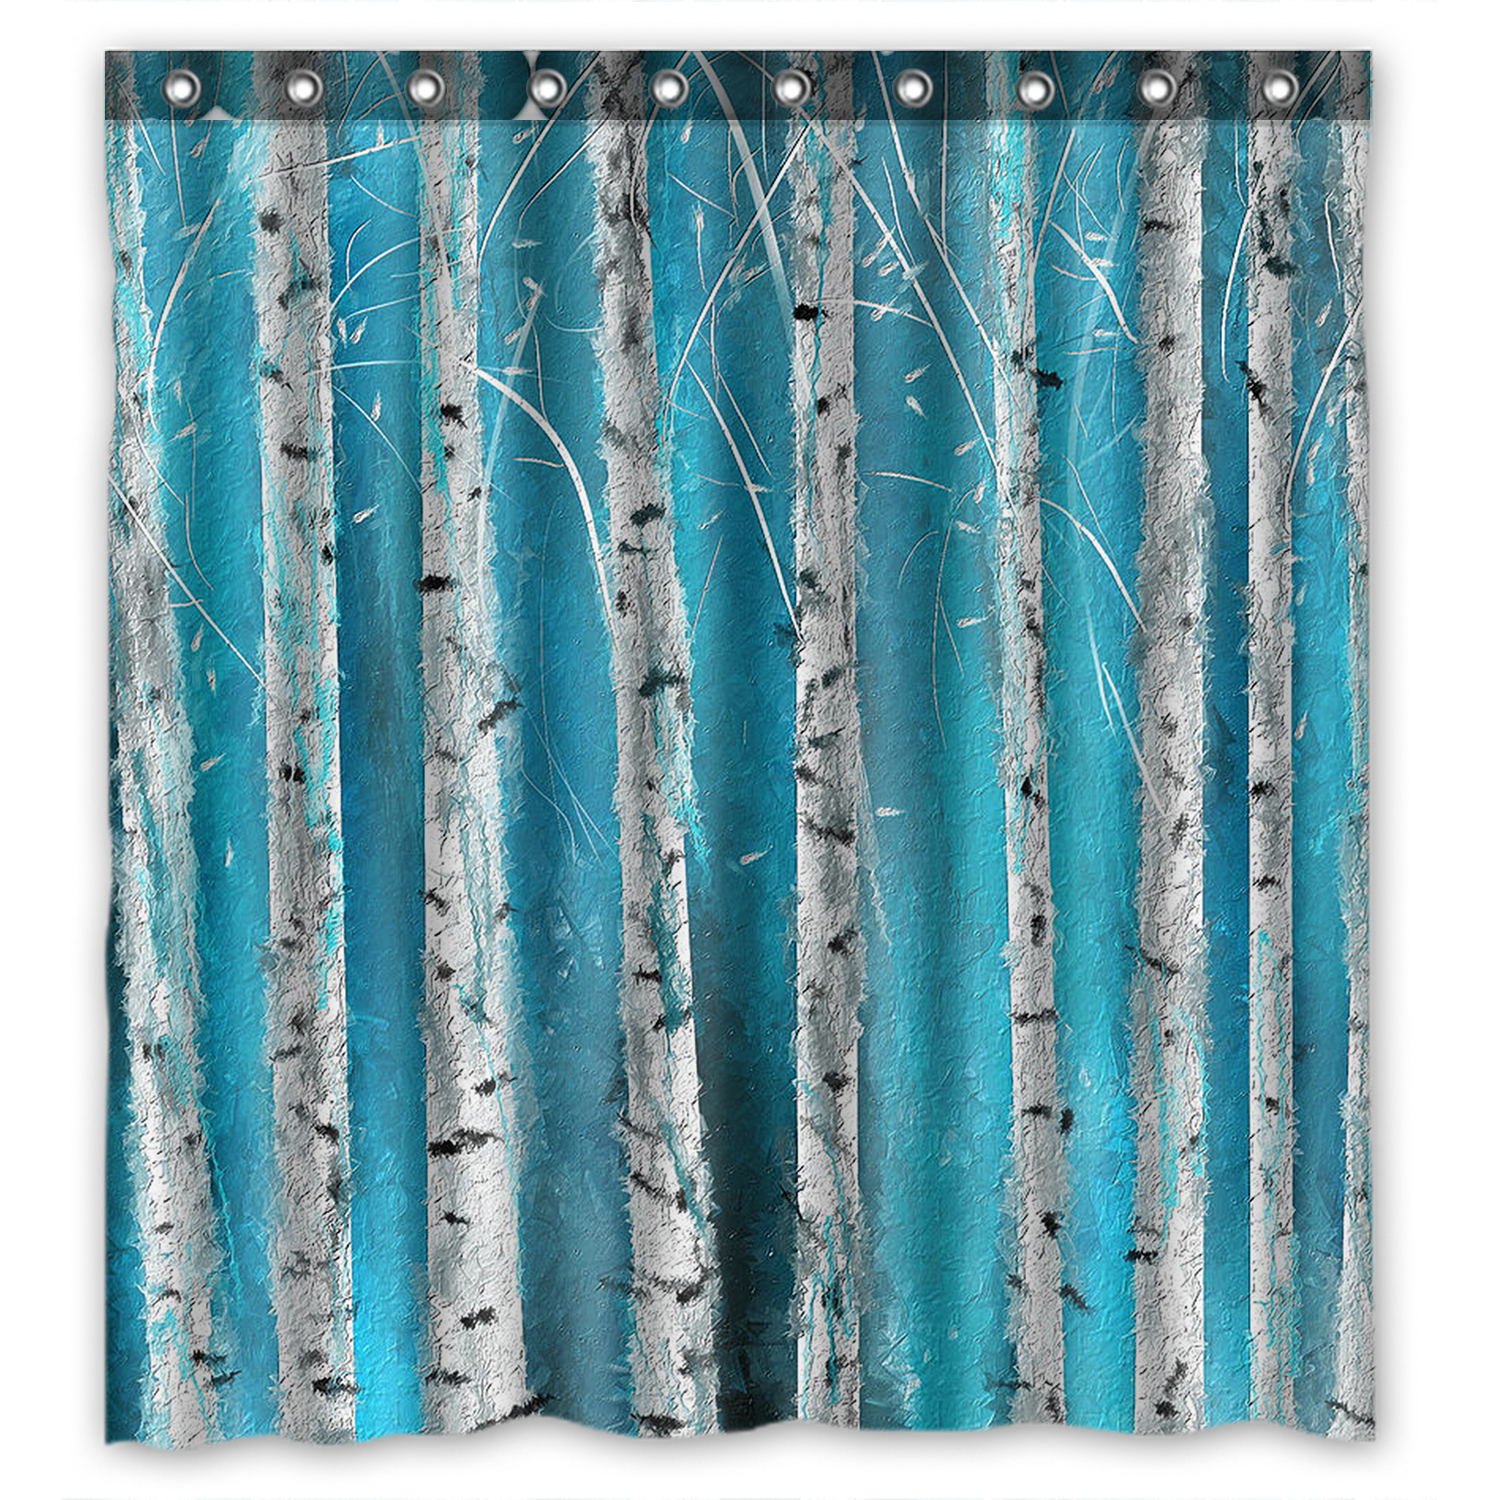 YKCG Home Bathroom Winter White Fabric Birch Tree Hooks-Foggy Forest Road Waterproof Fabric Bathroom Shower Curtain 66x72 inches